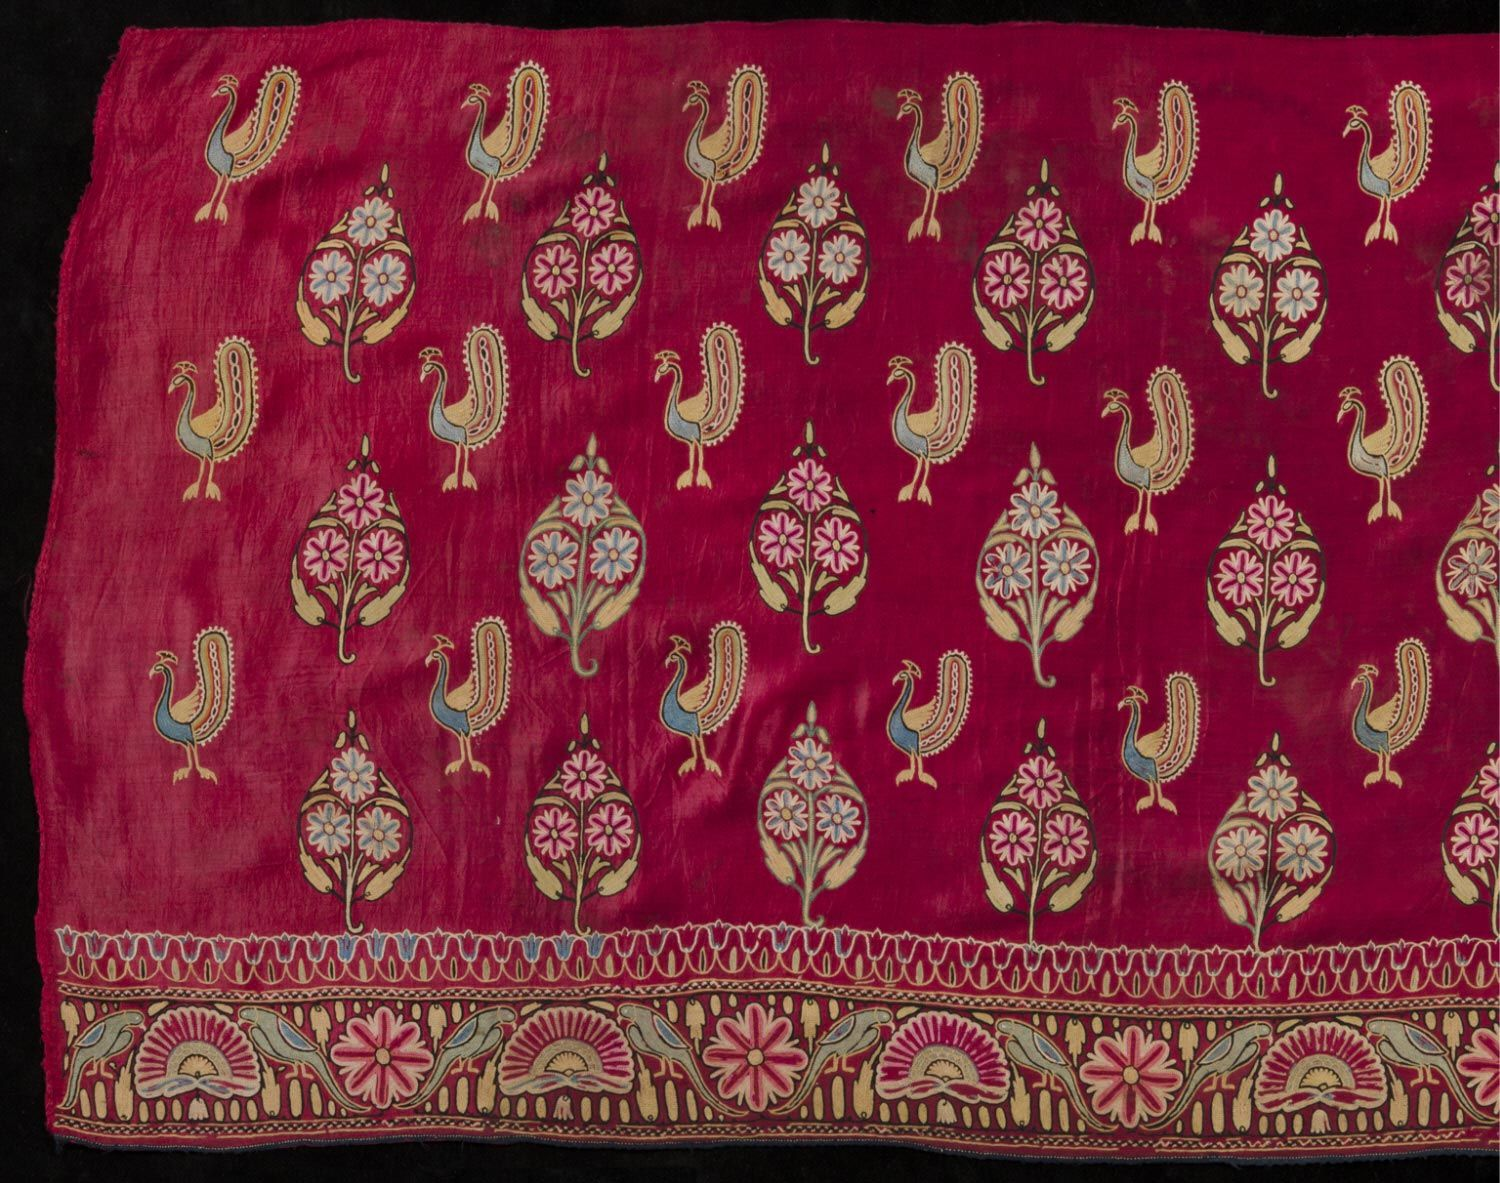 Embroidered Textile Made in Gujarat, India 19th century 7